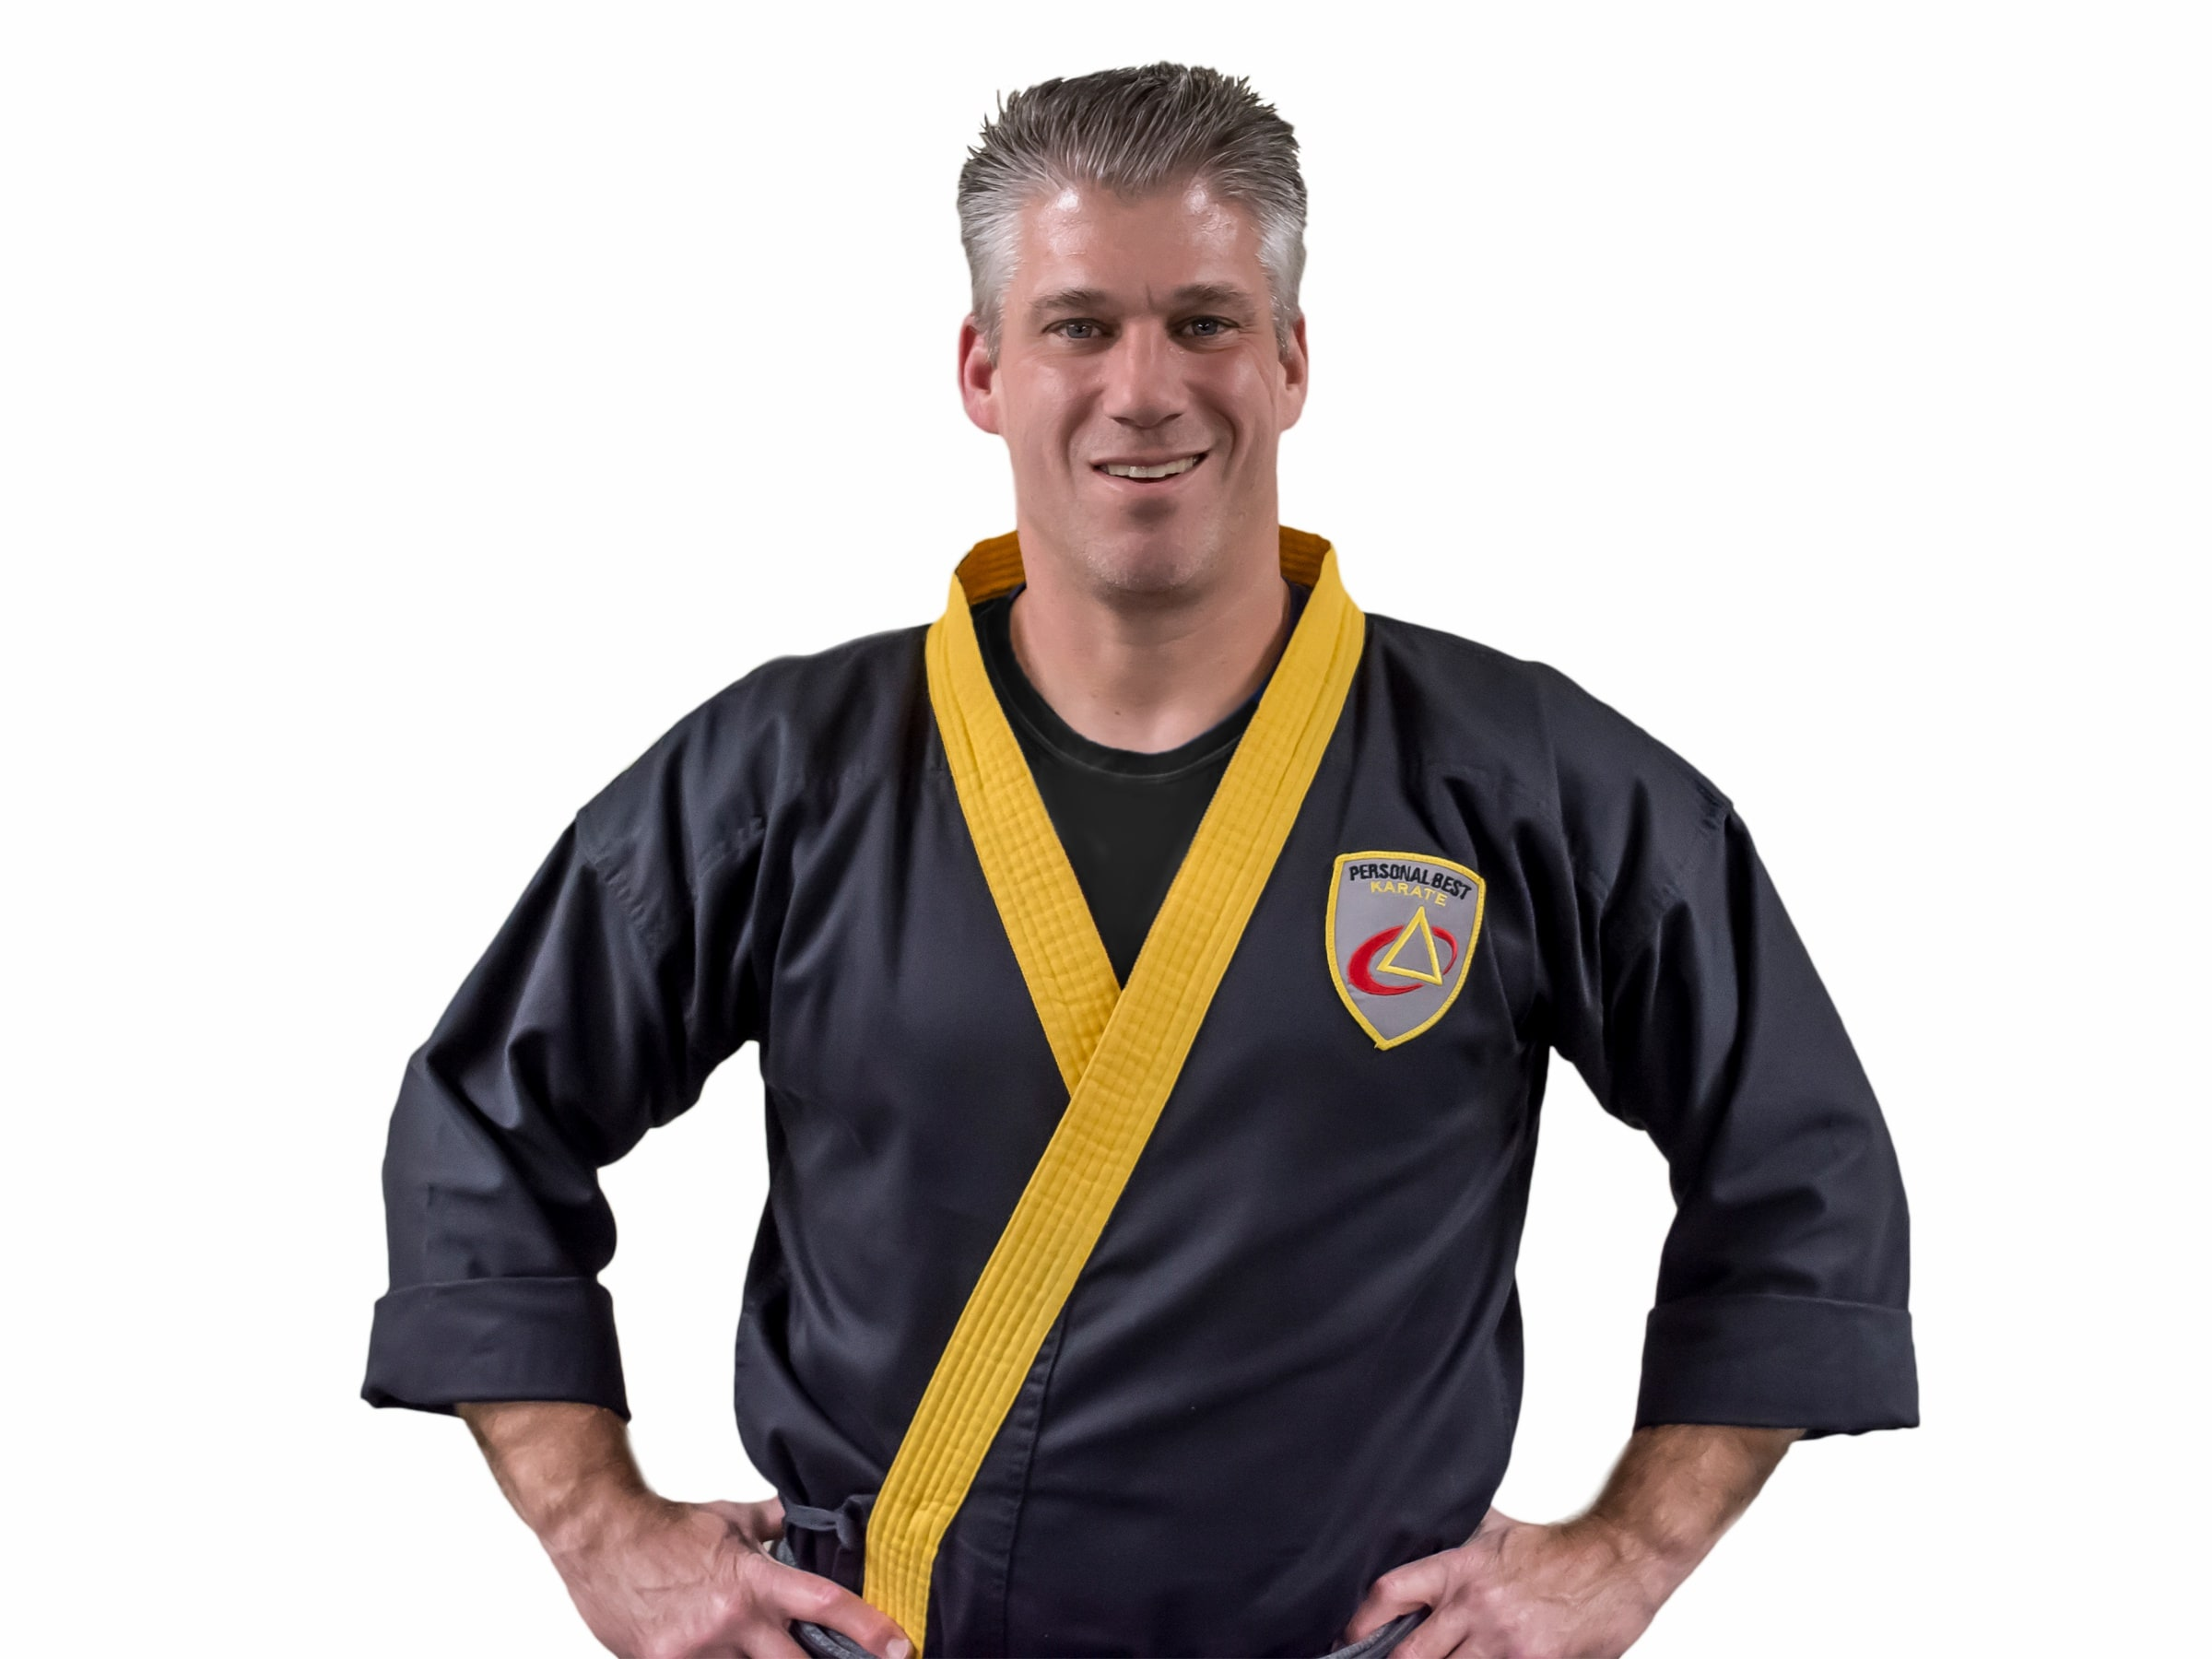 John Mosca in Norton - Personal Best Karate